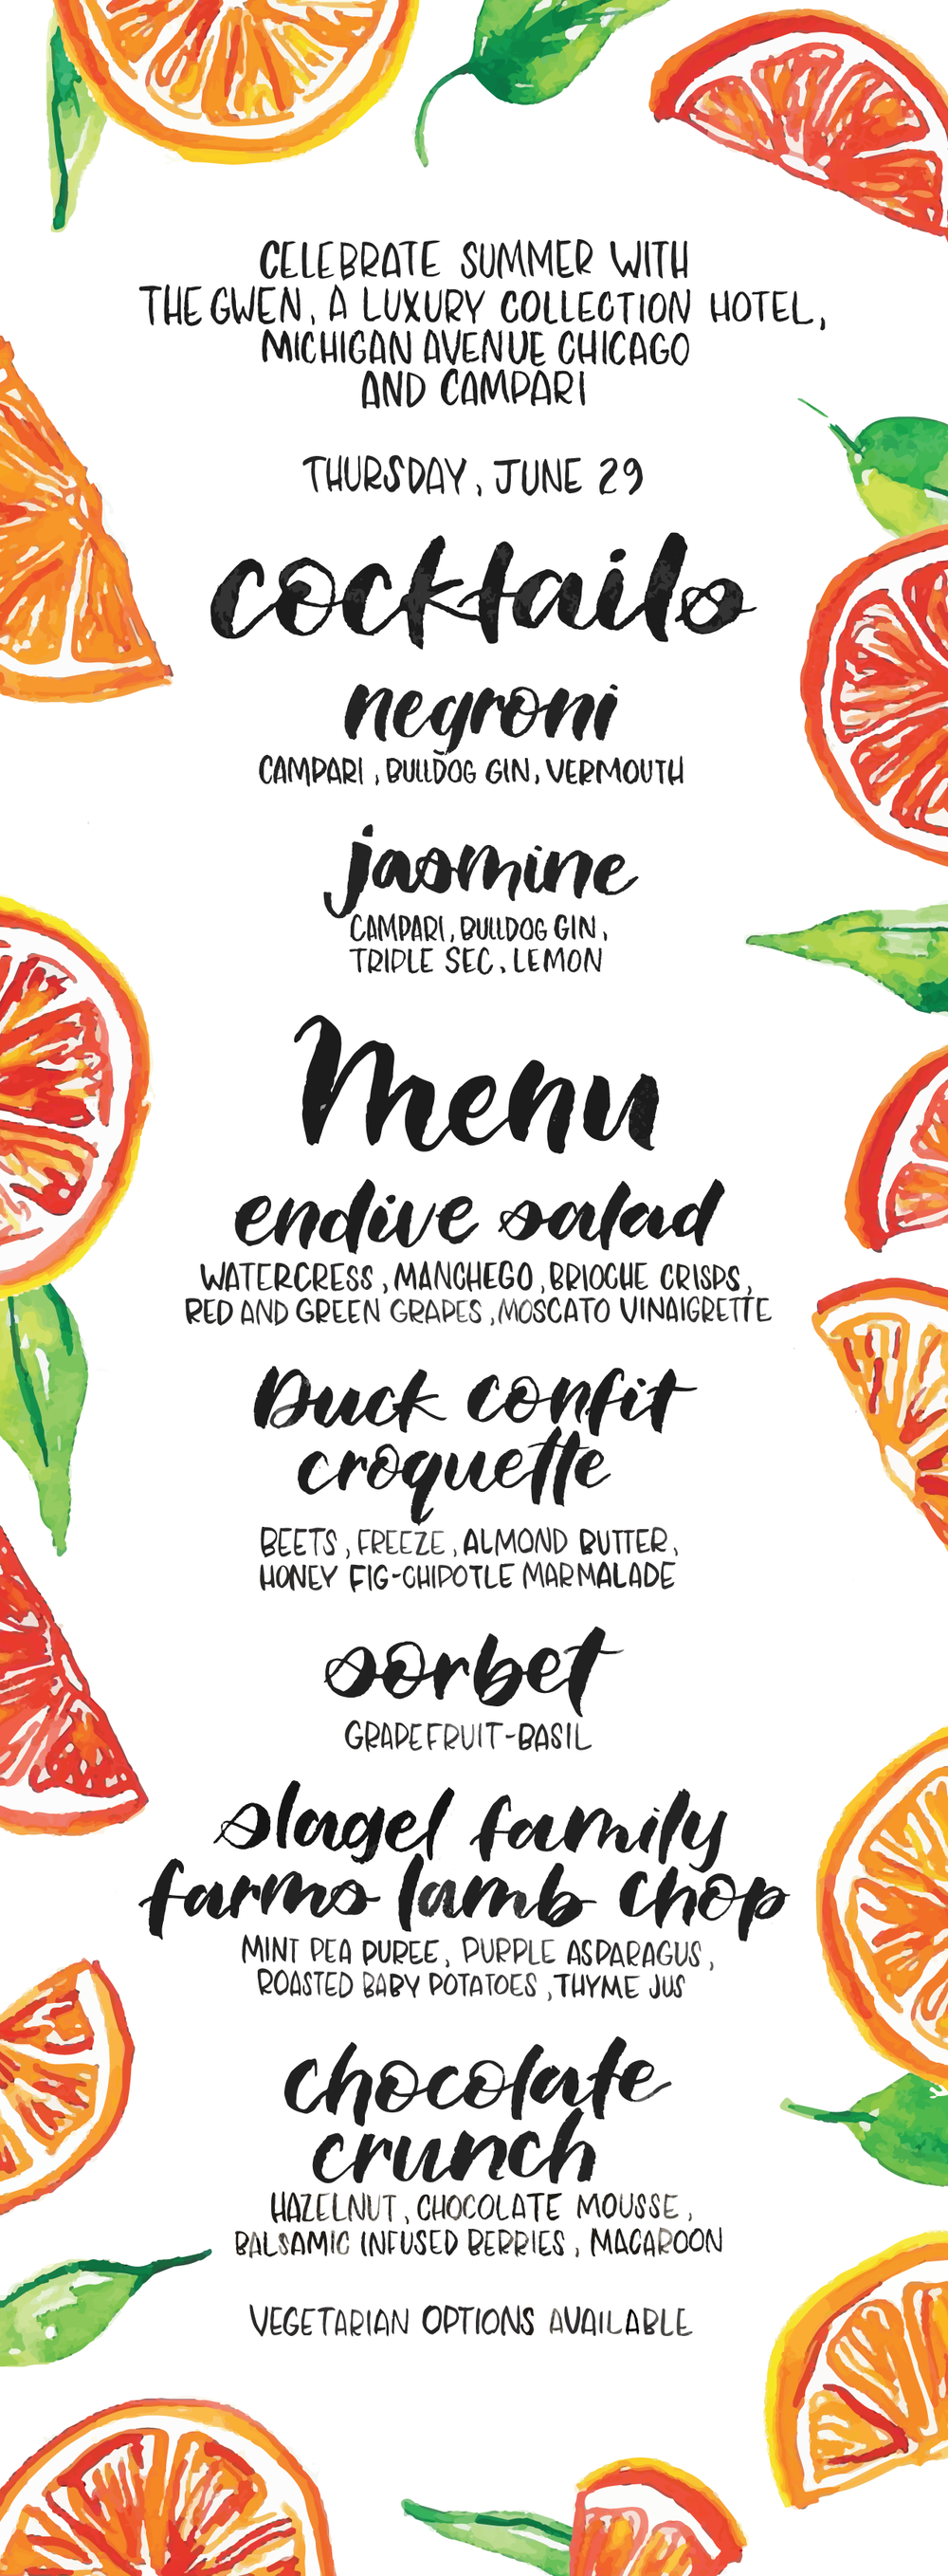 GWEN_CAMPARI_MENU_FINAL-01.png